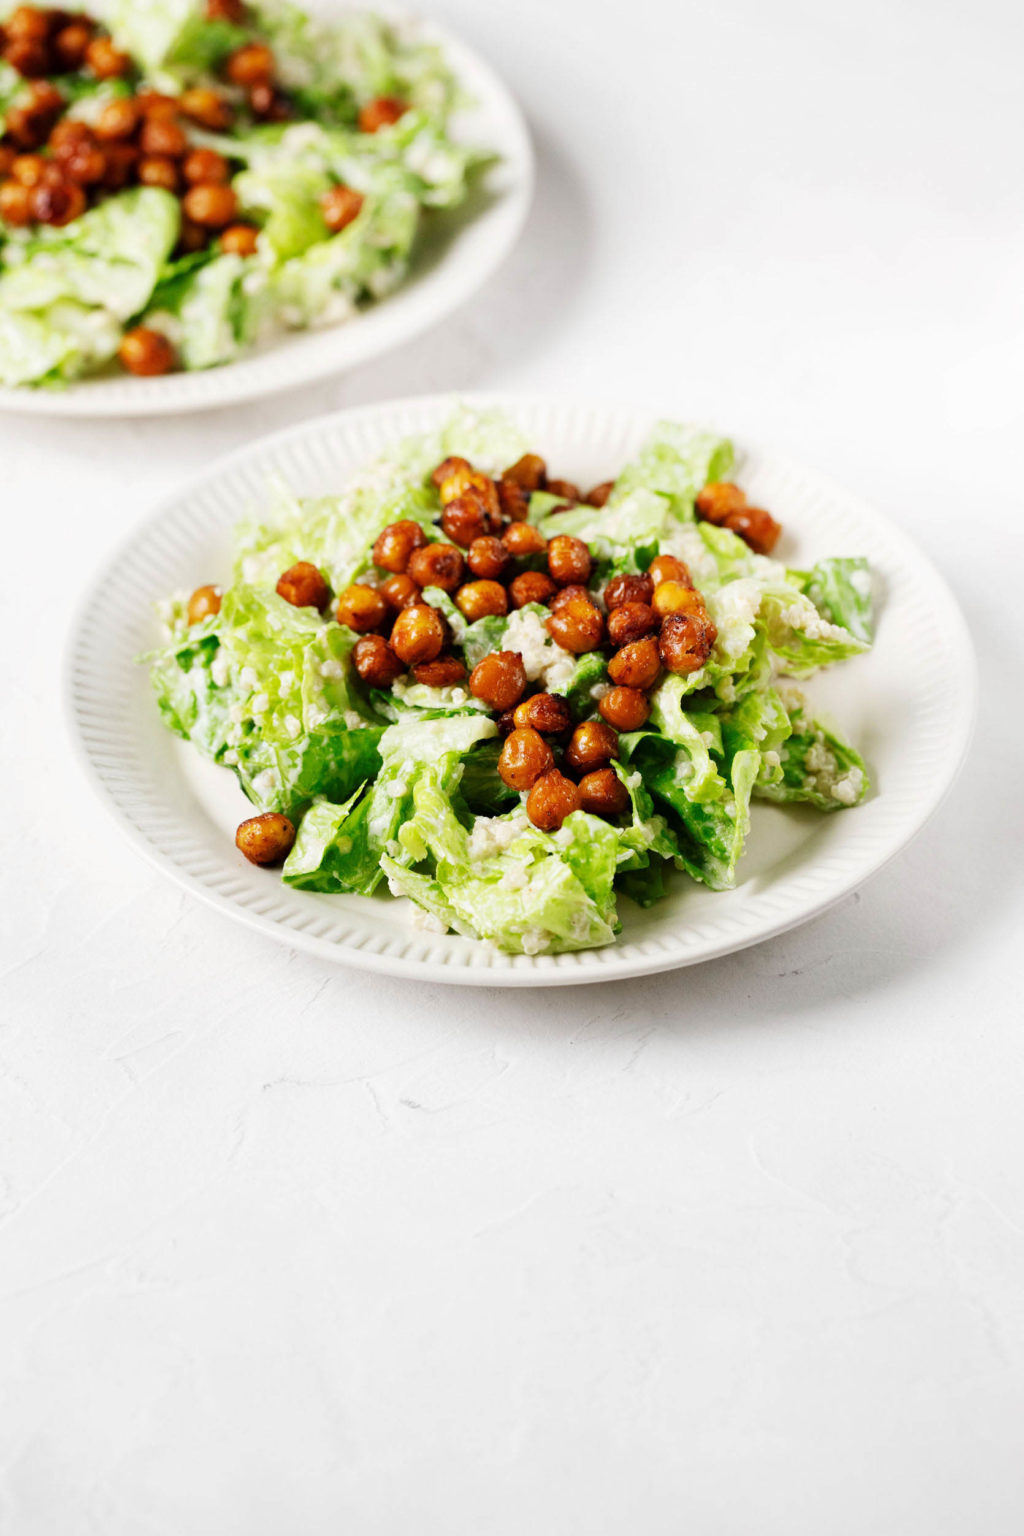 An angled photograph of a white surface, which is topped with two fluted white plates that are holding vegan quinoa chickpea Caesar salad.